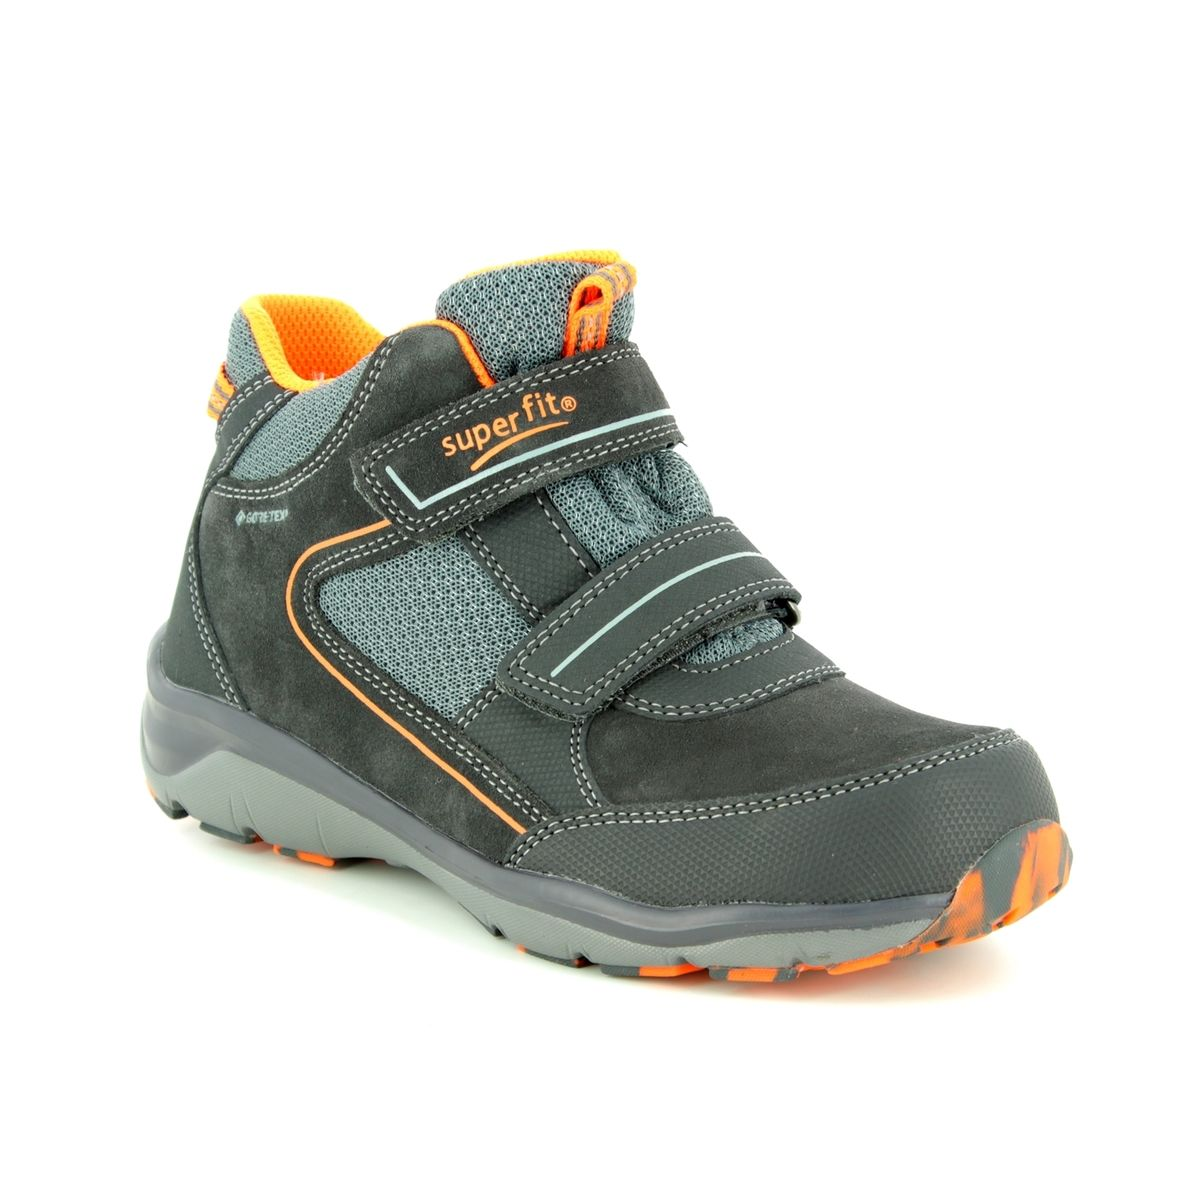 de1d832b8e5 Superfit Boots - Black Orange - 09239/20 SPORT5 GORE-TEX